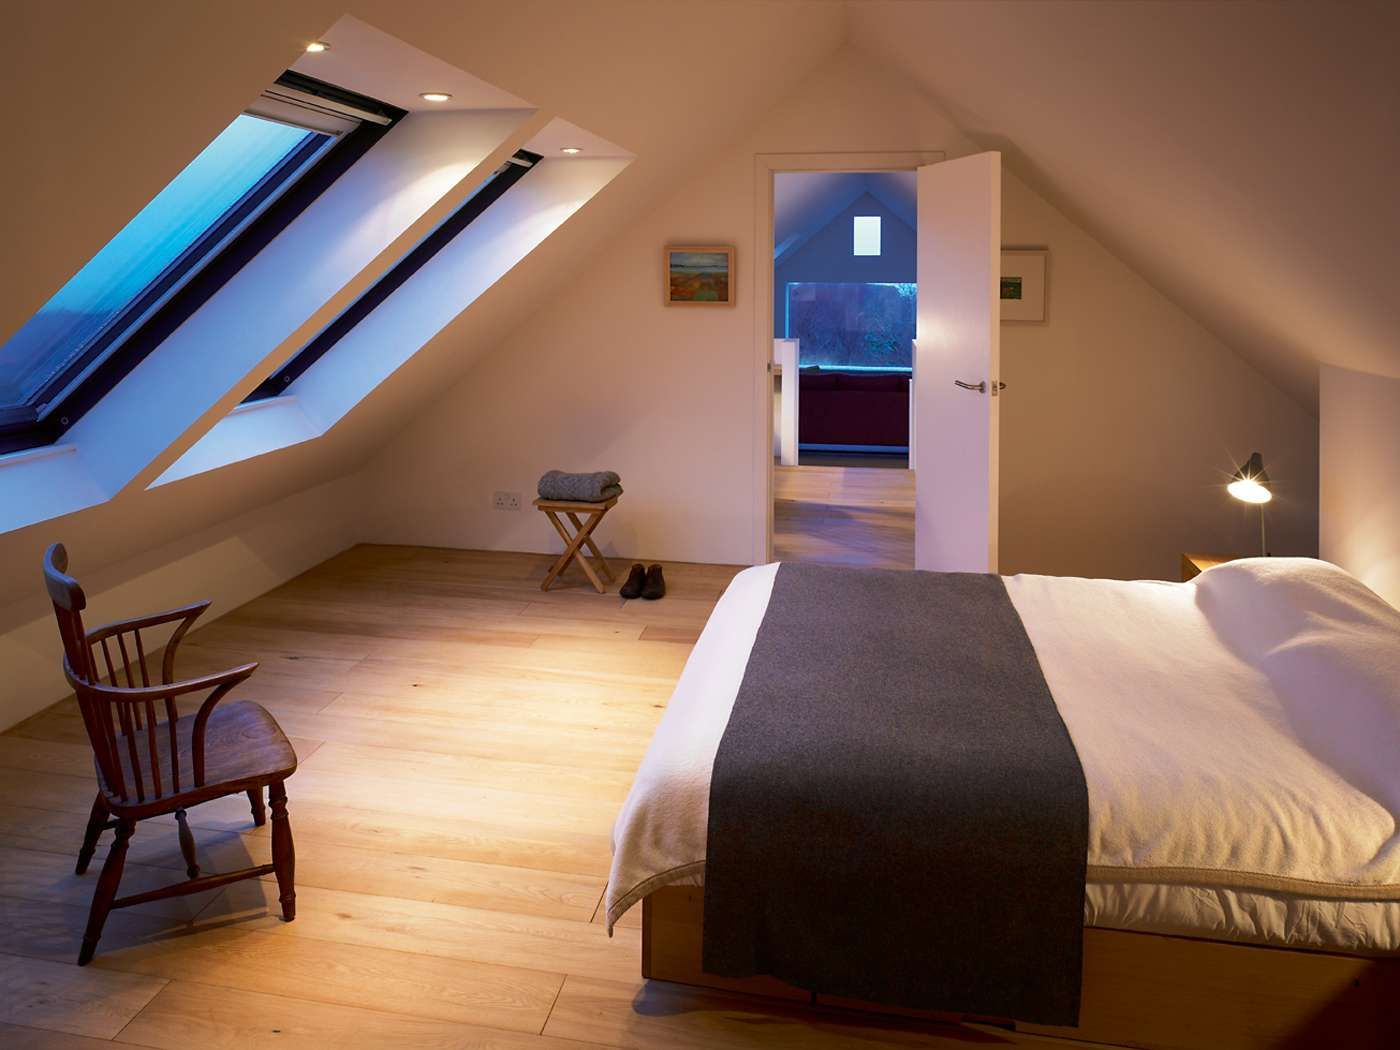 Long window over bed  a sustainable long house  homebuilding u renovating  longhouse